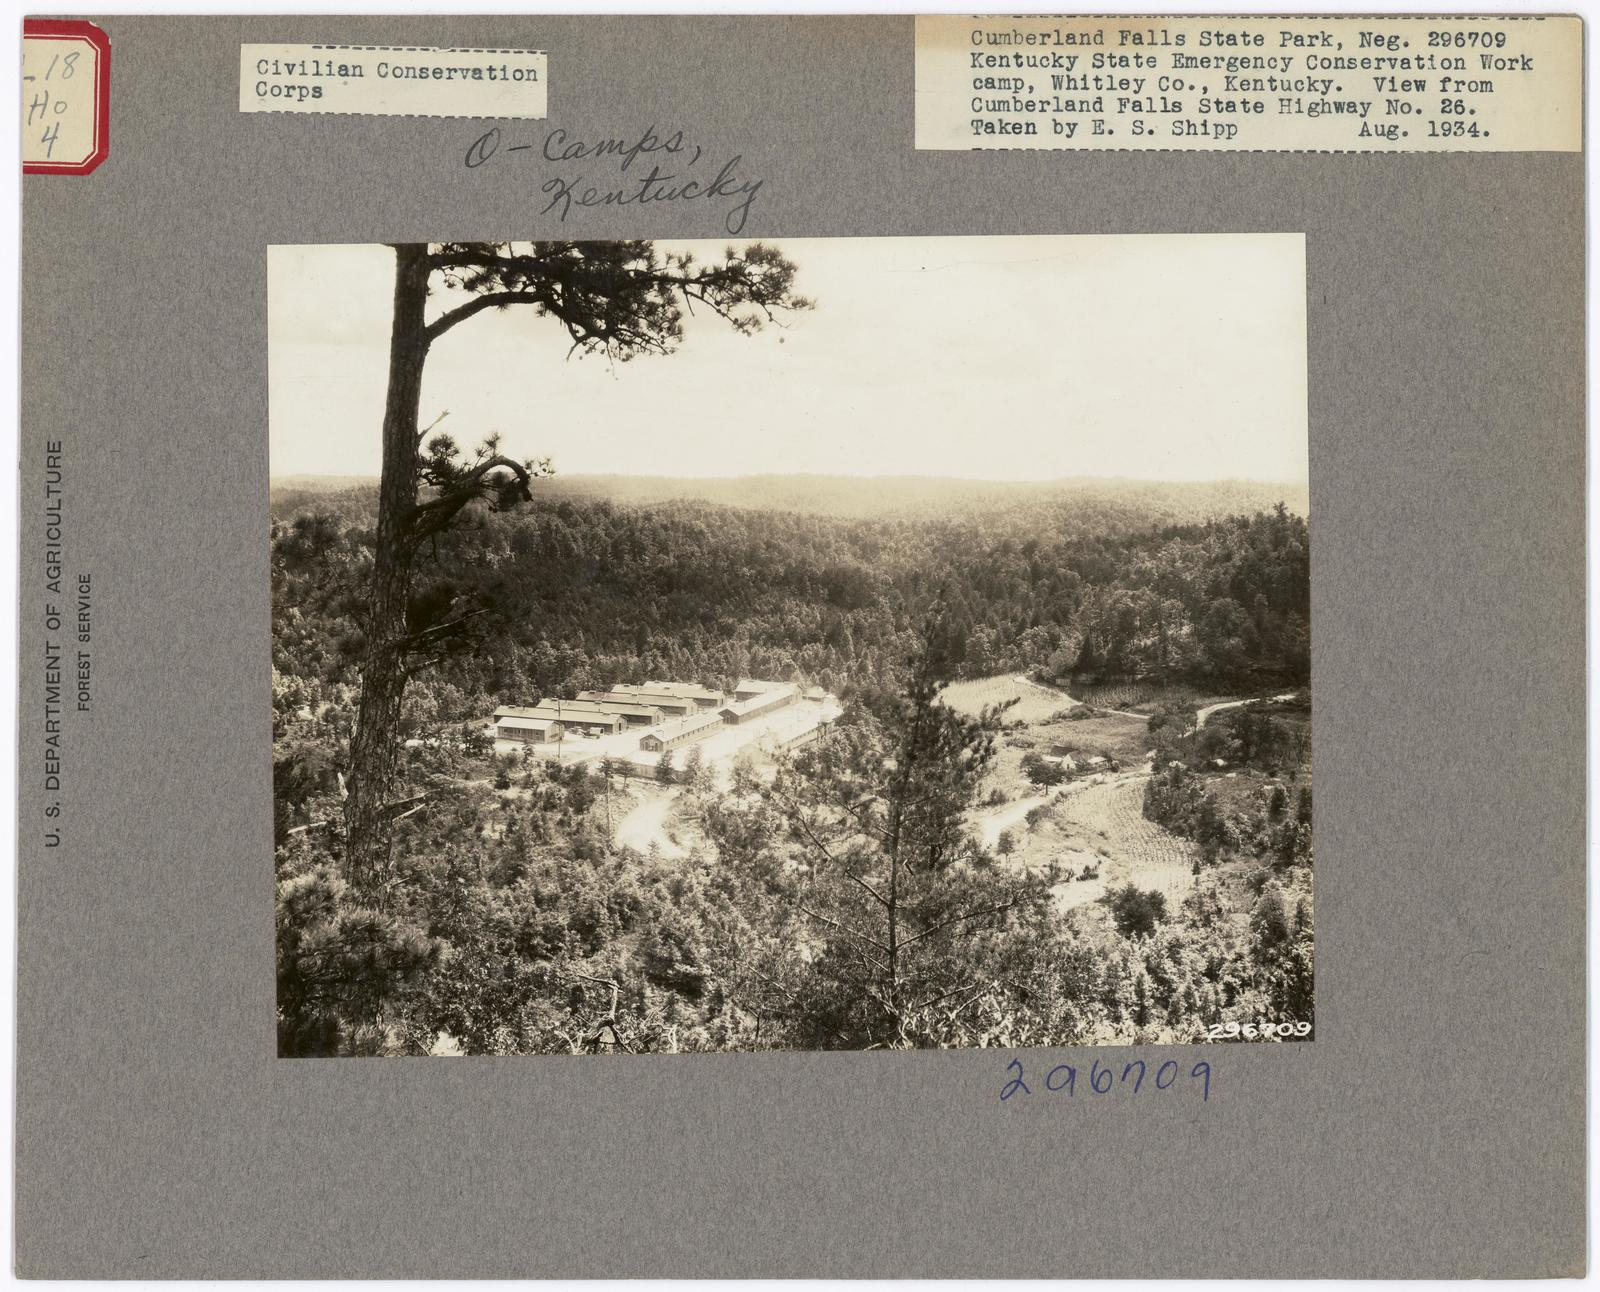 Civilian Conservation Corps - Camps - Kentucky